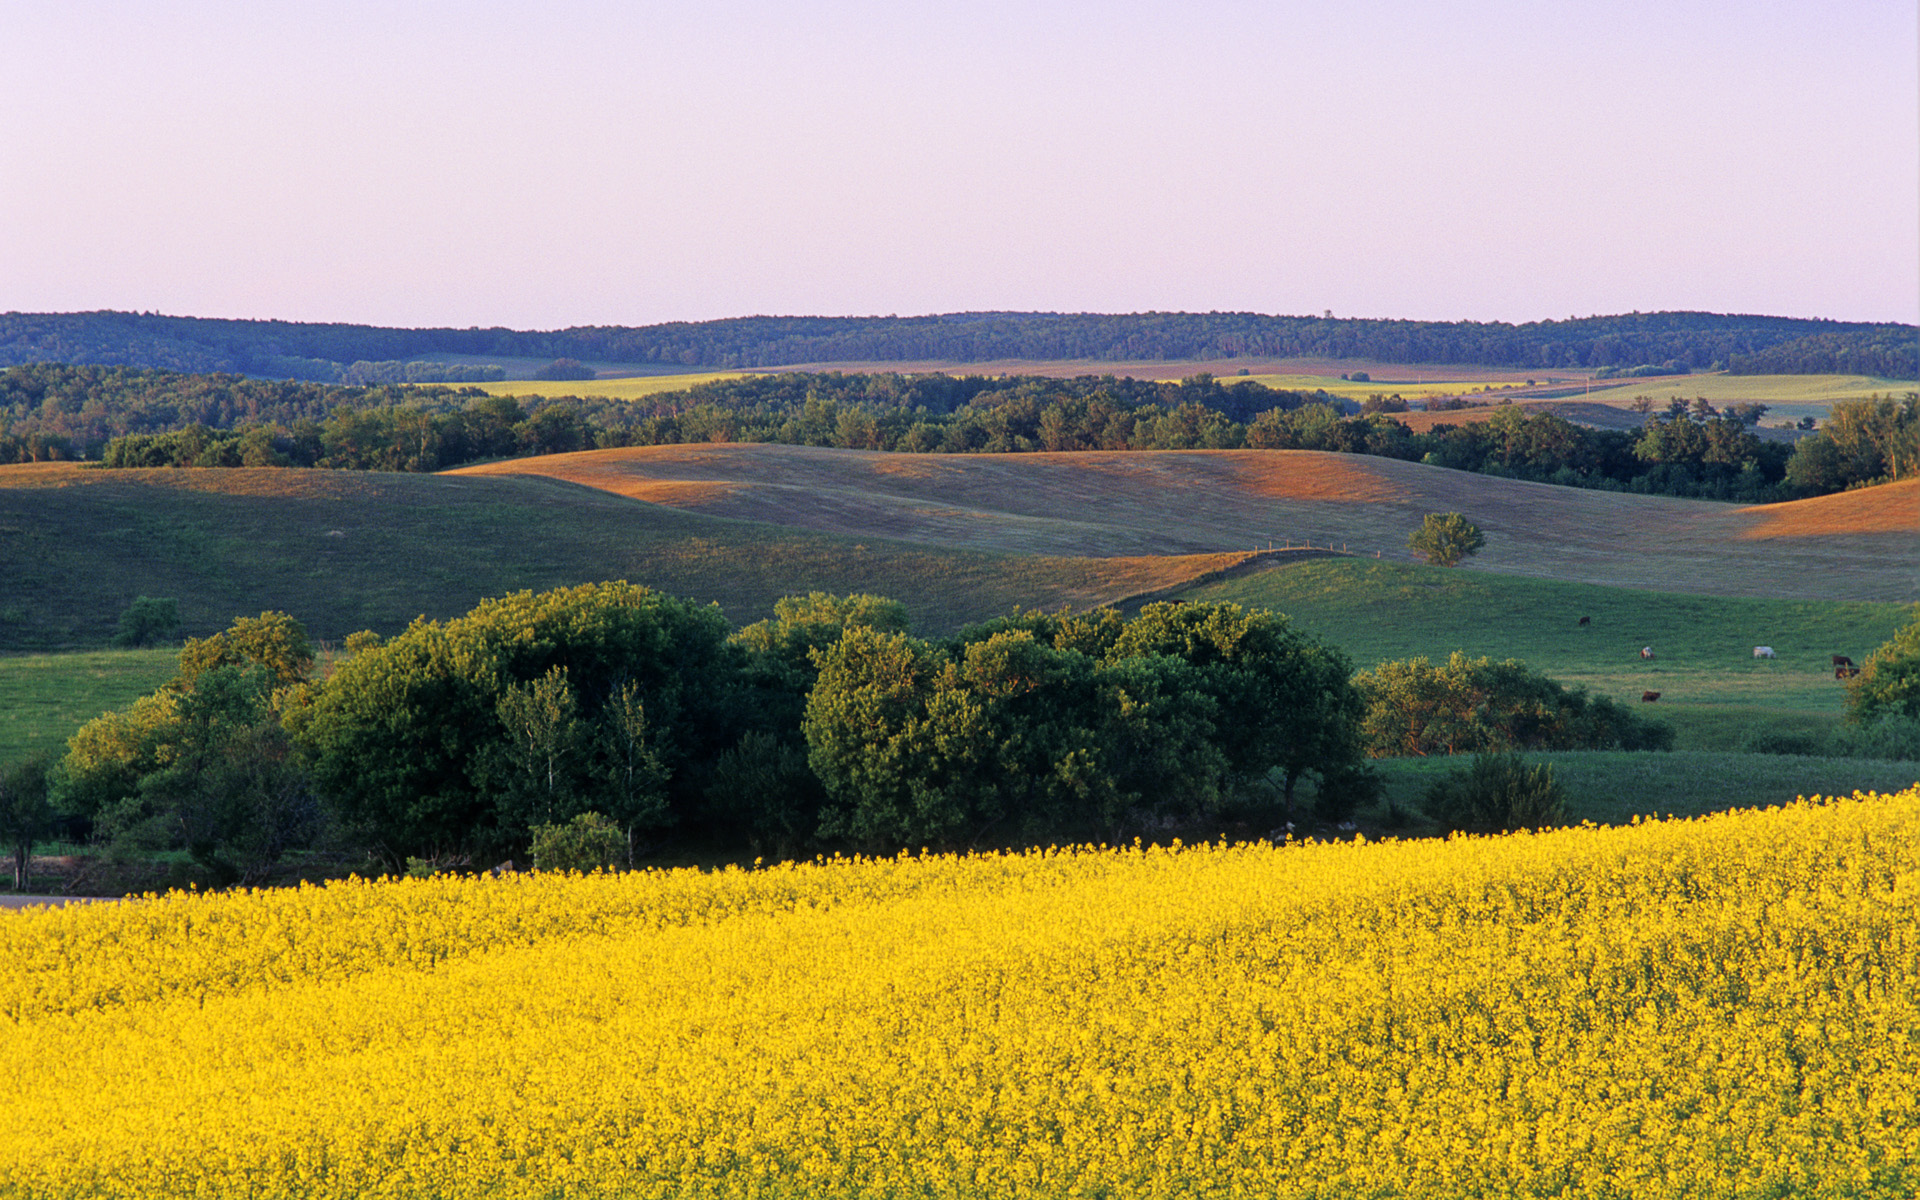 Hd Wallpapers For Ubuntu Farmland With Canola In Foreground Tiger Hills Manitoba